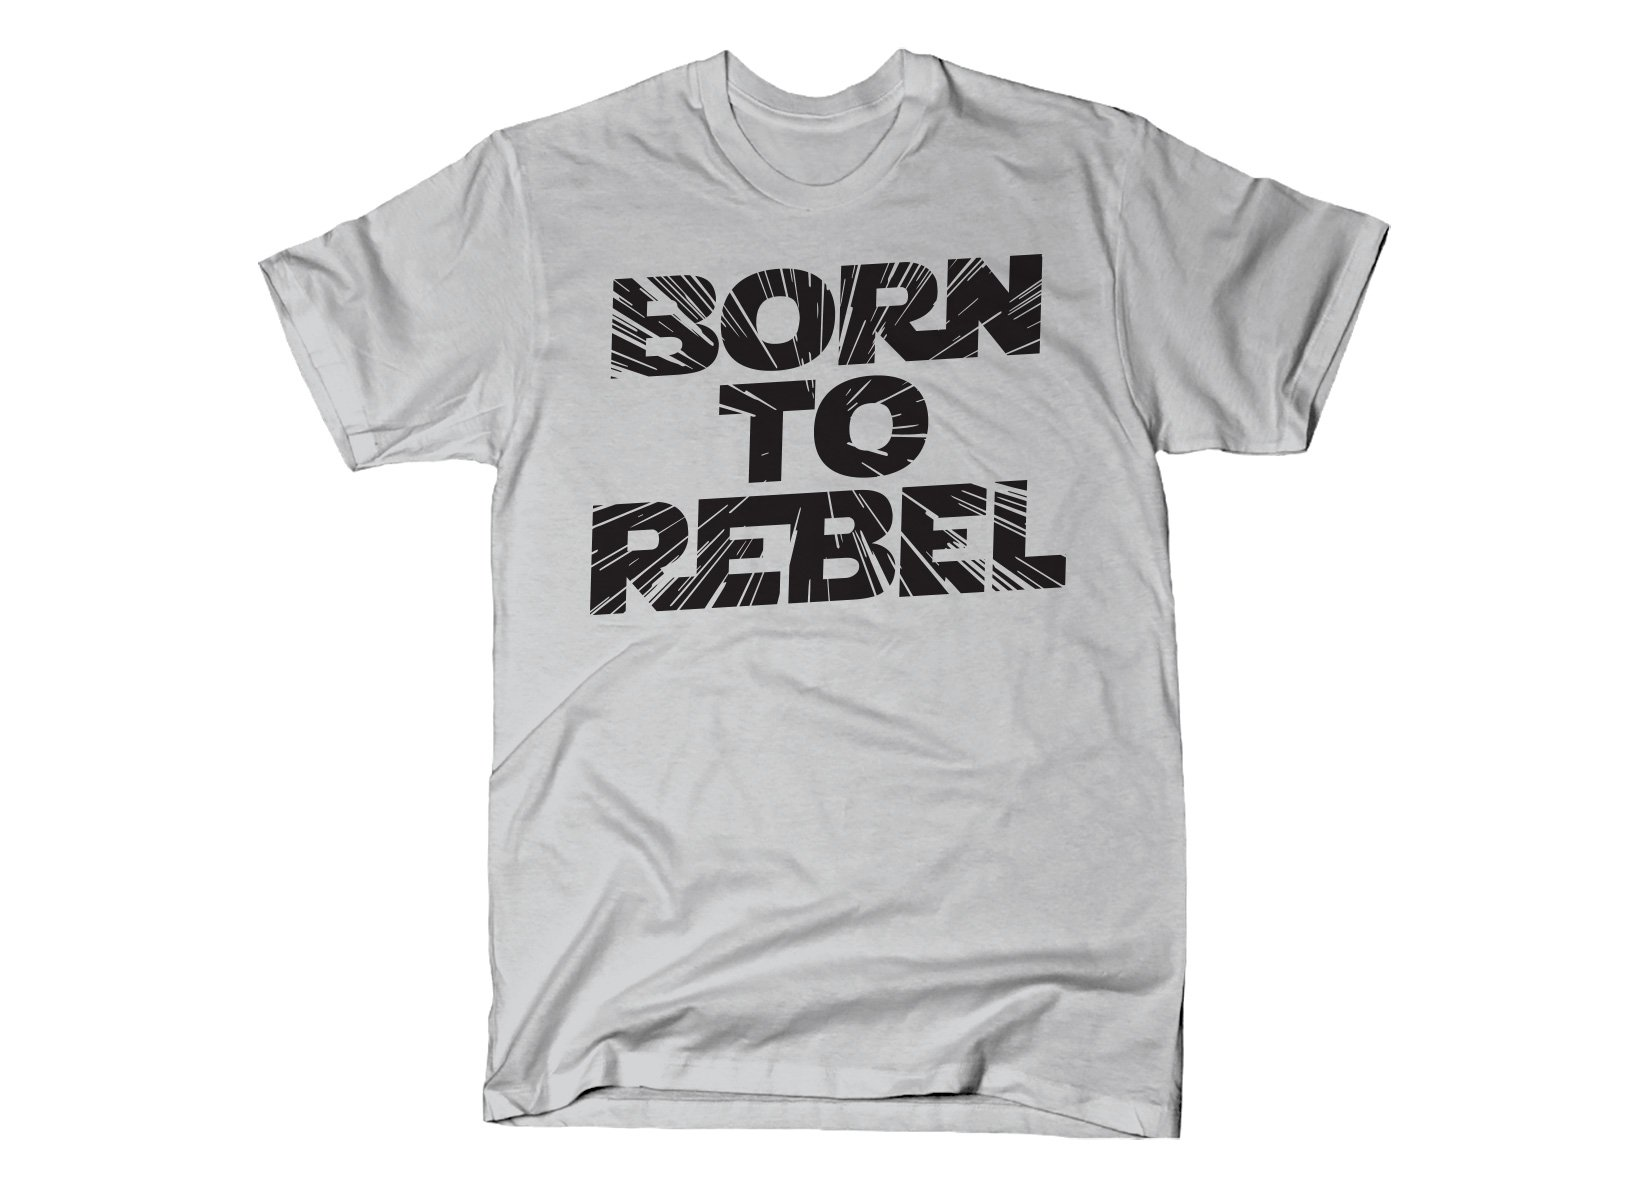 SnorgTees: Born To Rebel